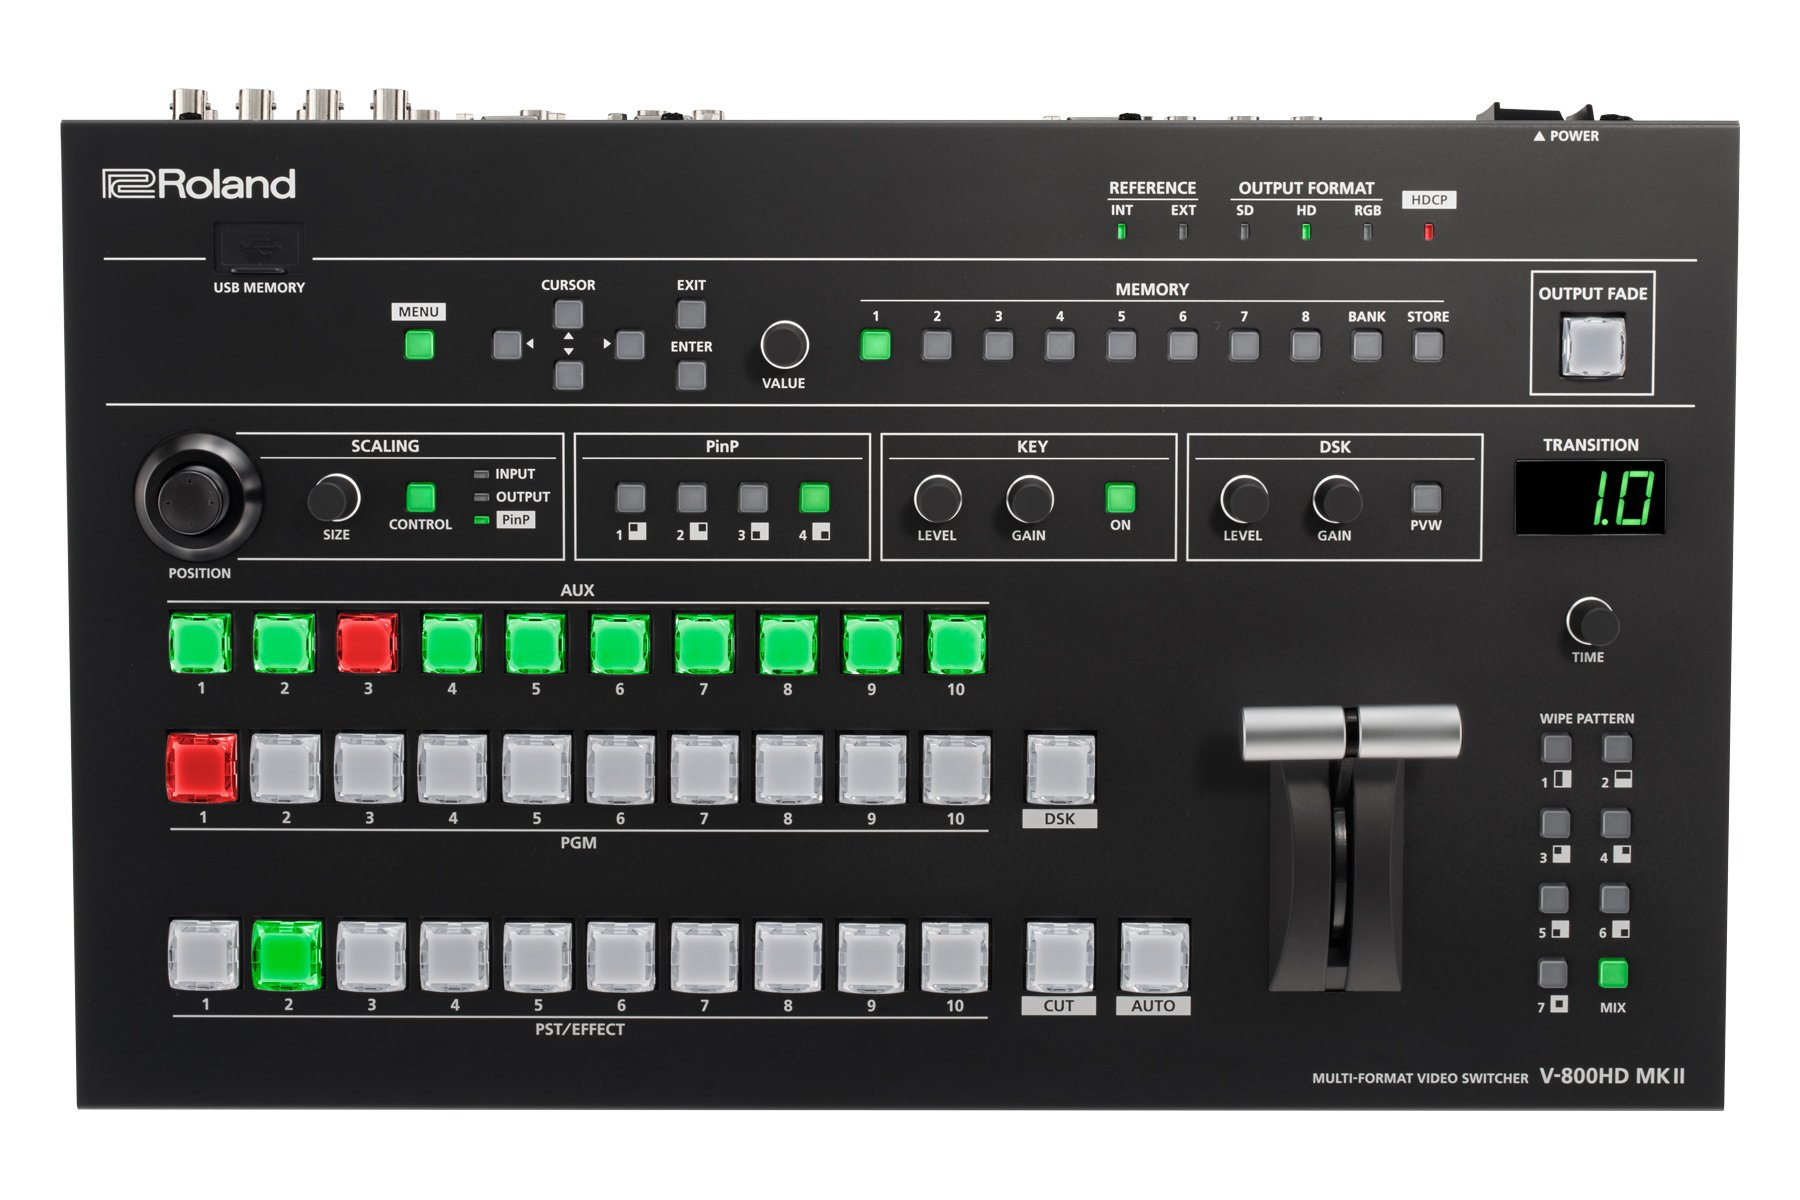 Multi-Format Video Switcher with 16 Inputs and 8 Cross Points